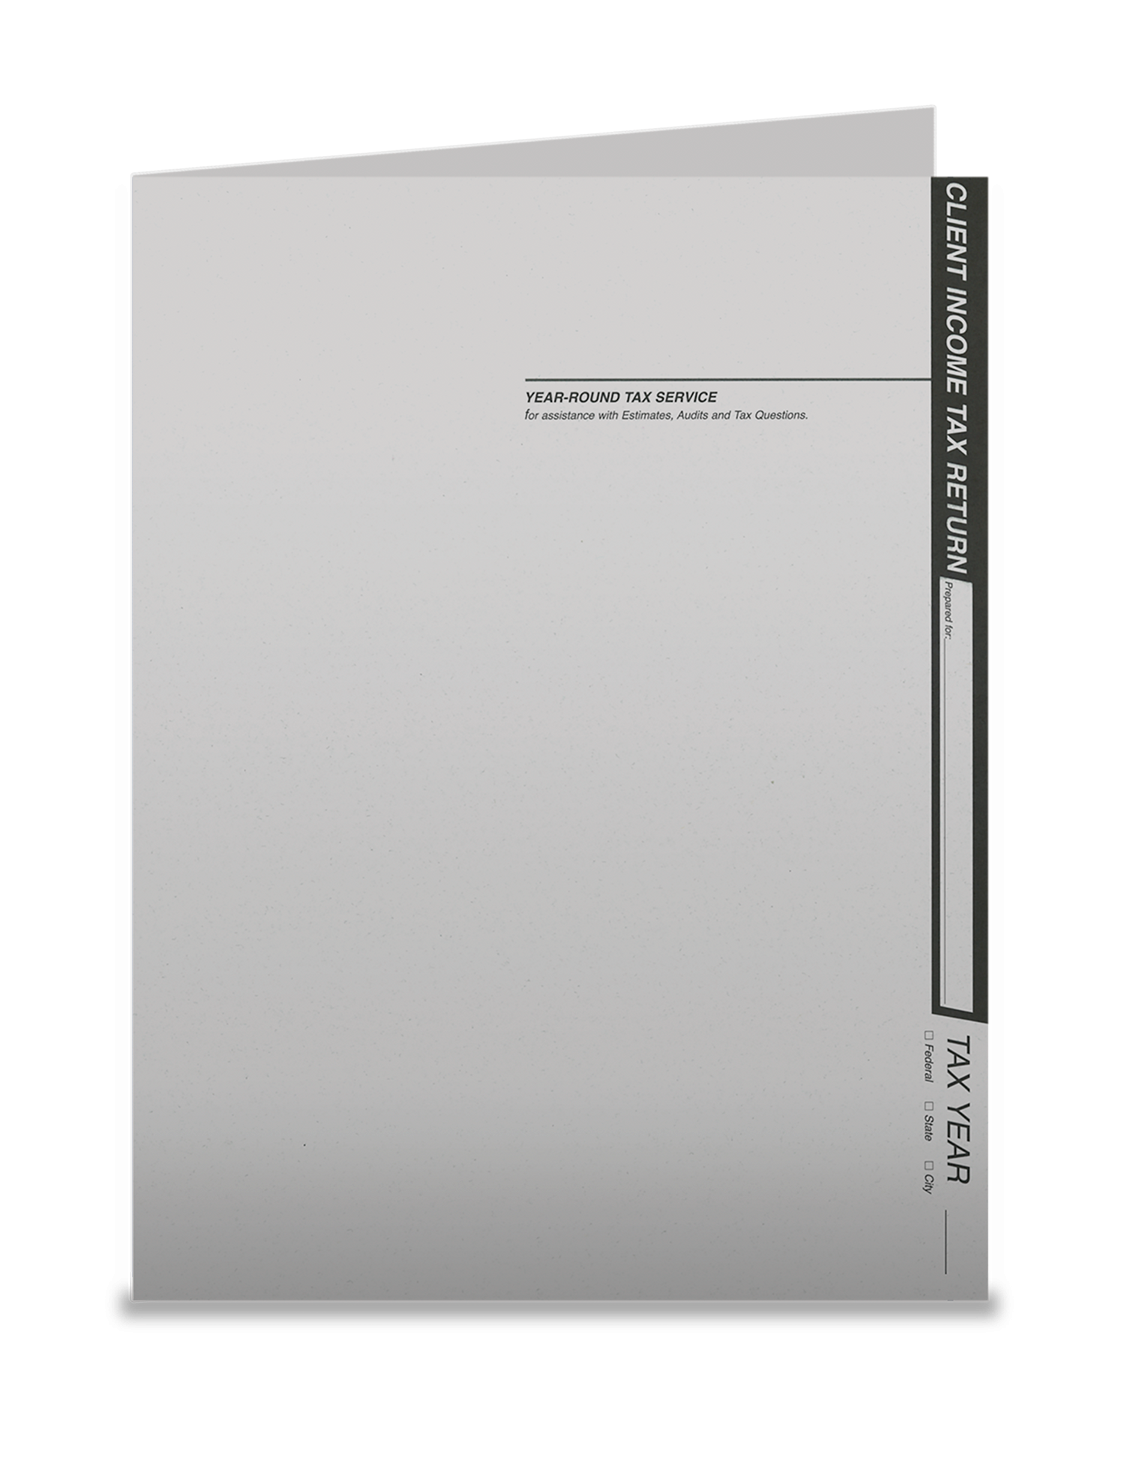 Tax Return Folders - Light Gray w/Pocket - #154